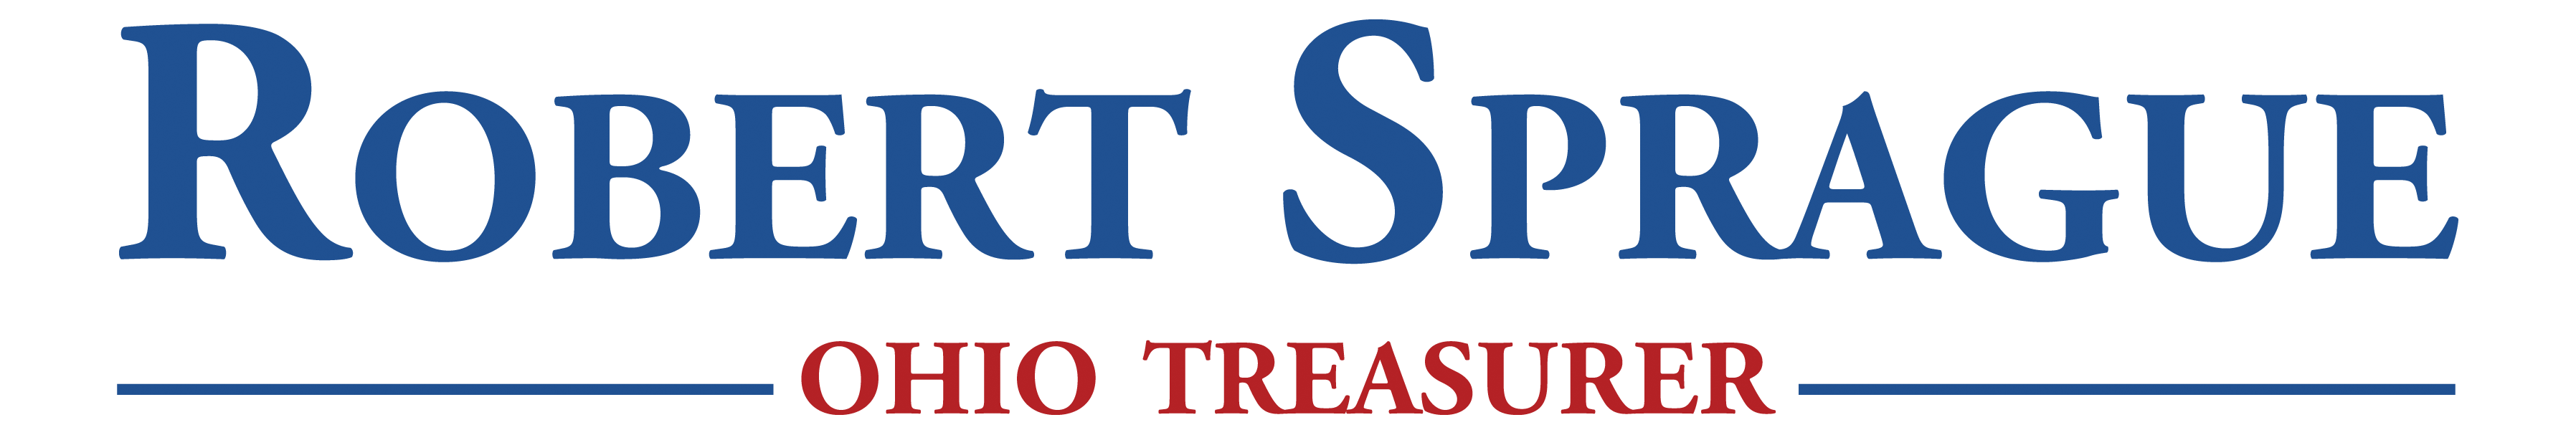 Ohio Treasurer Investor Relations - Official Seal or Logo